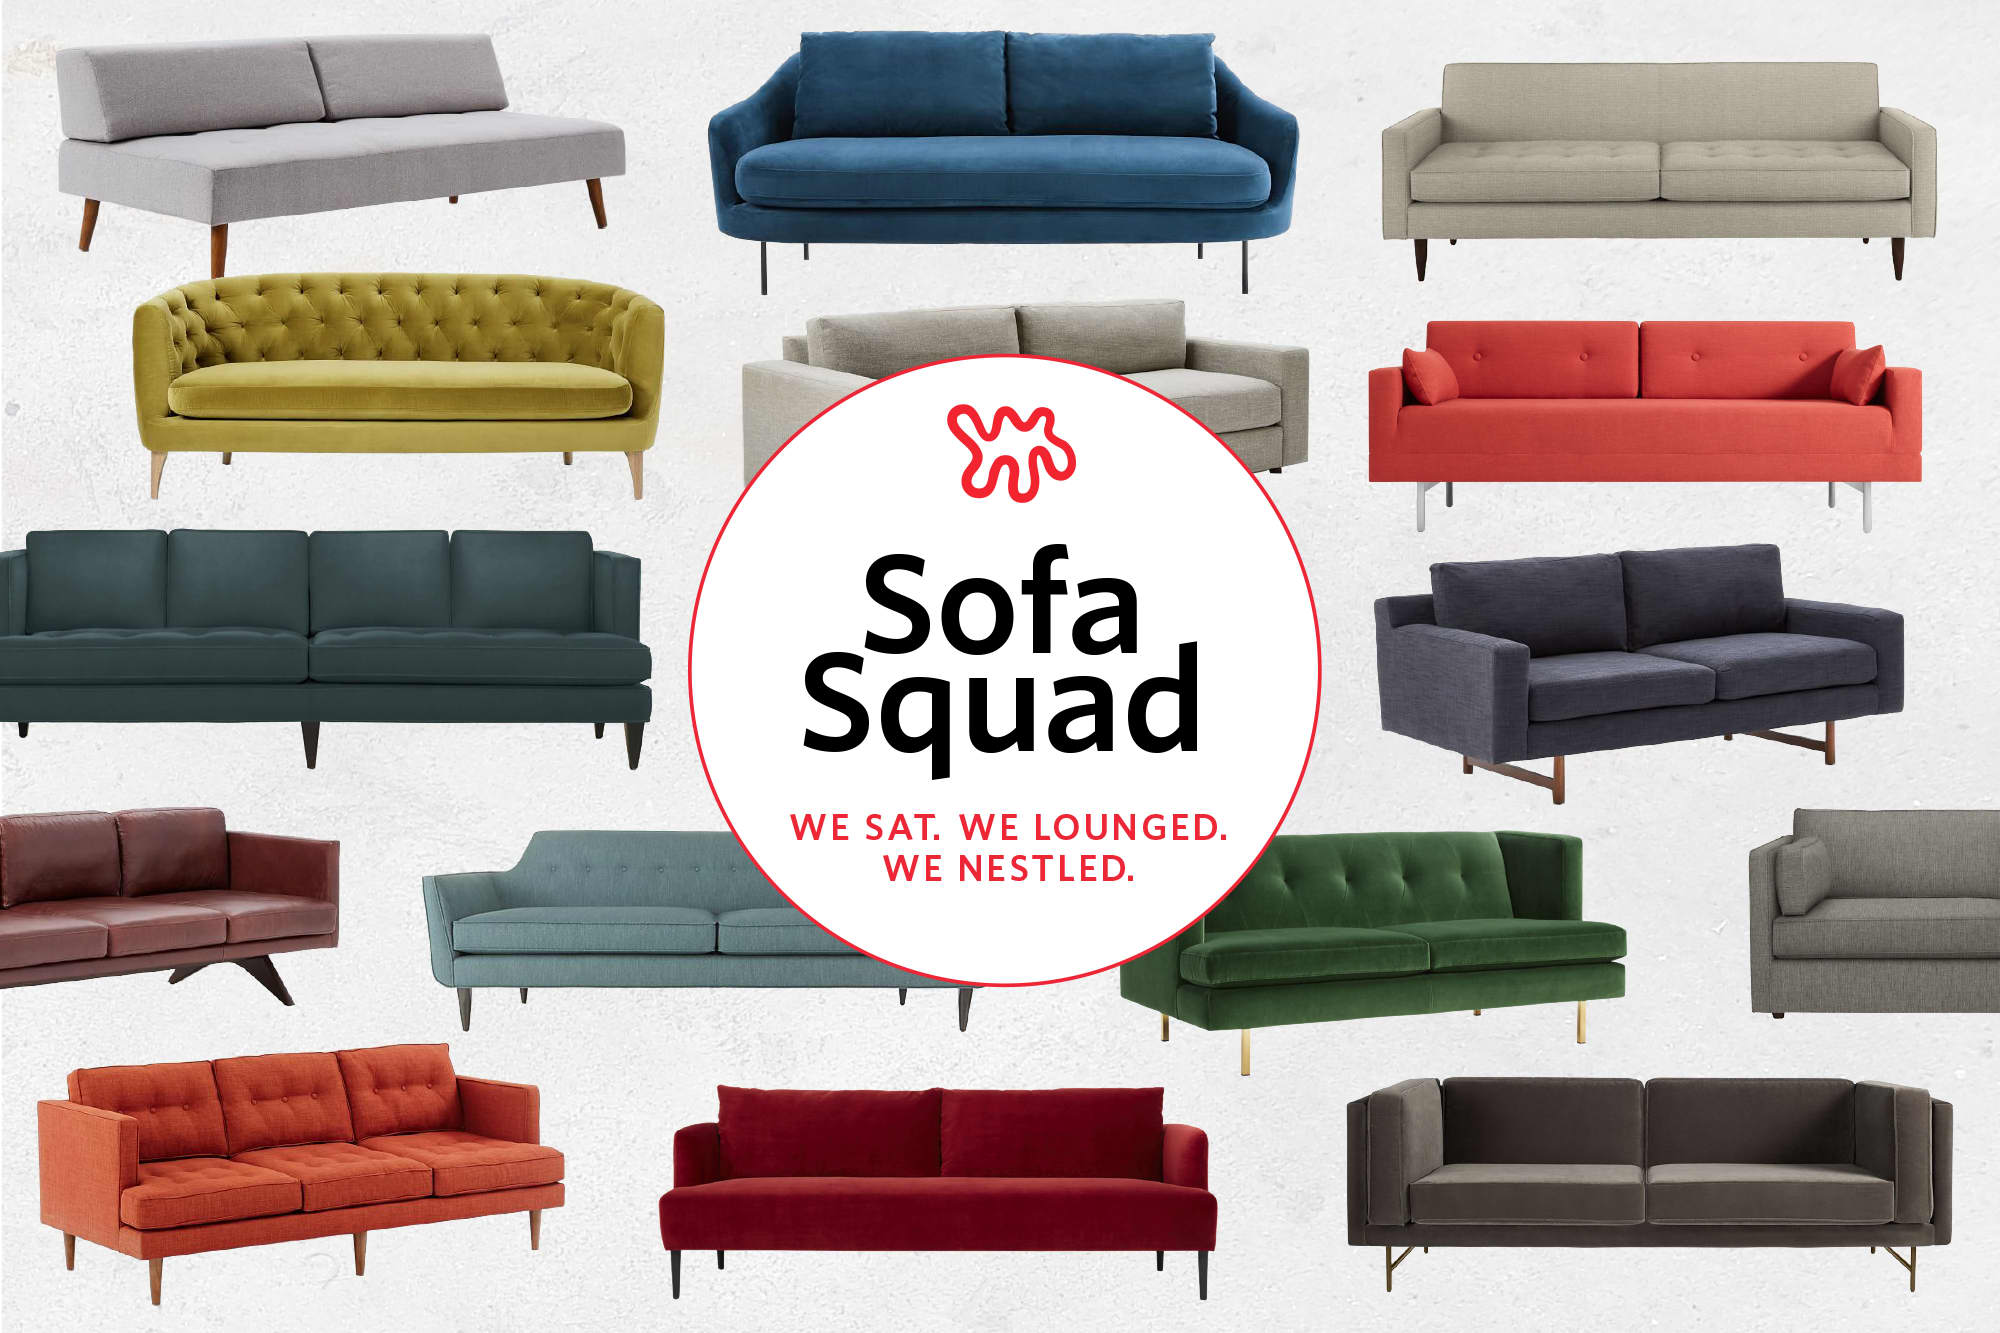 Introducing The Sofa Squad: Our Hunt For REALLY